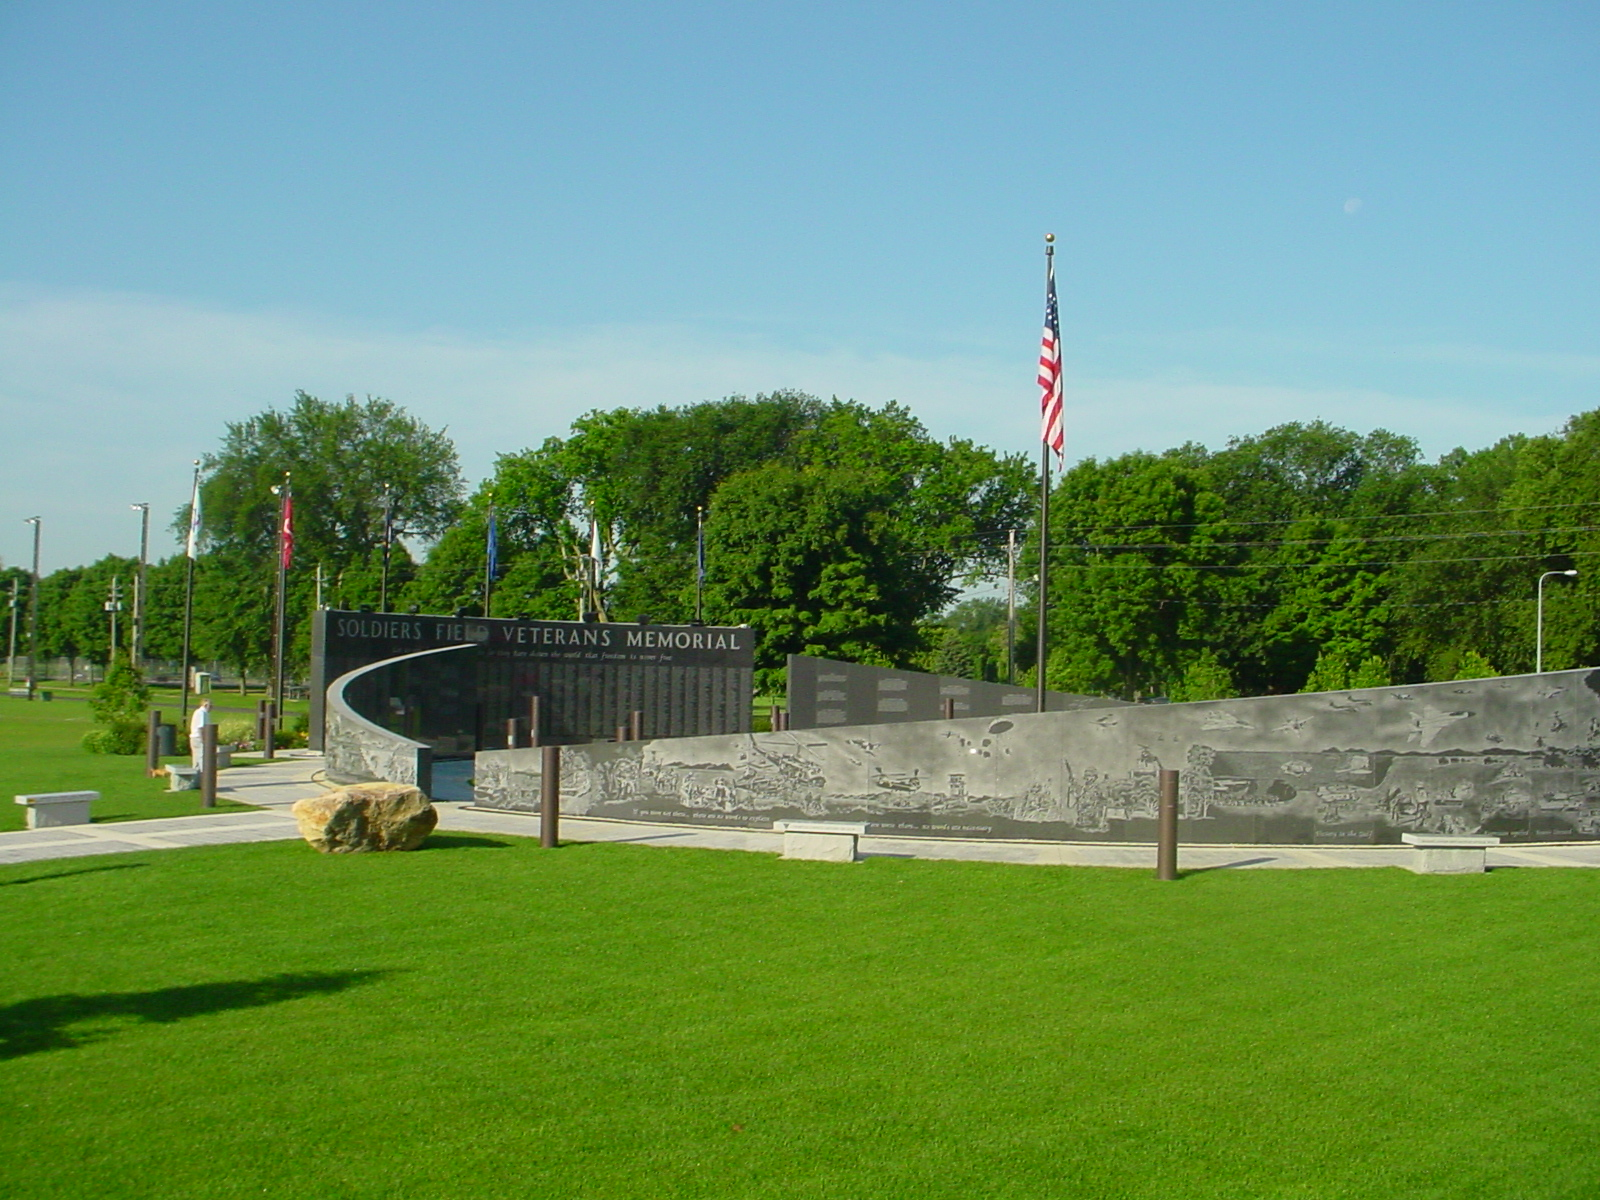 Veterans Memorial at Soldiers Field